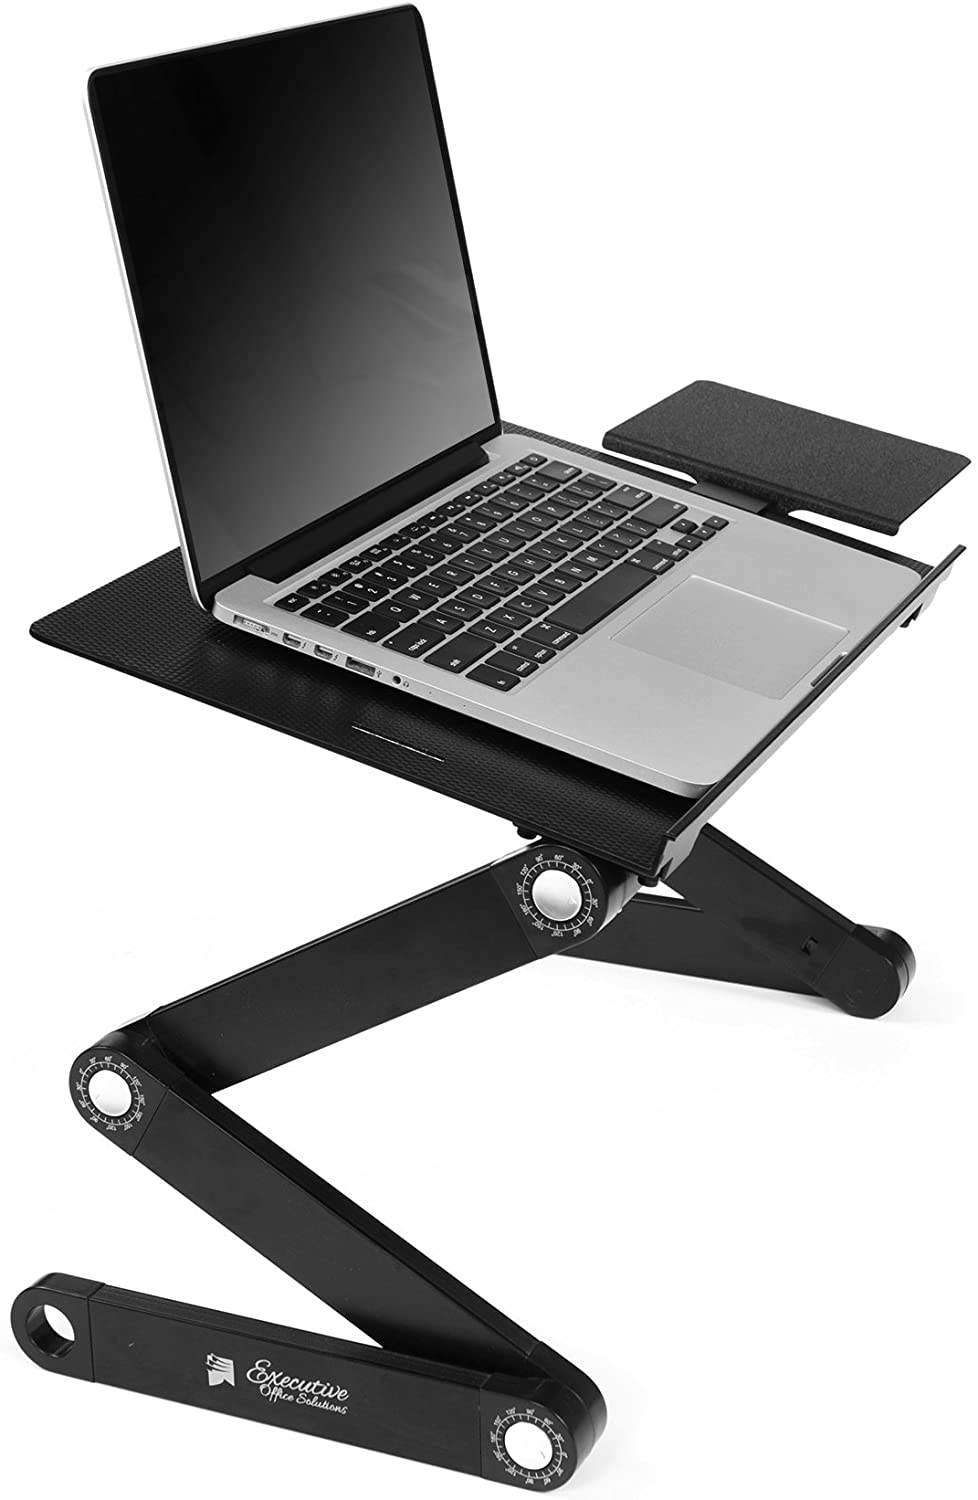 Best adjustable laptop stand: executive office solutions adjustable laptop stand